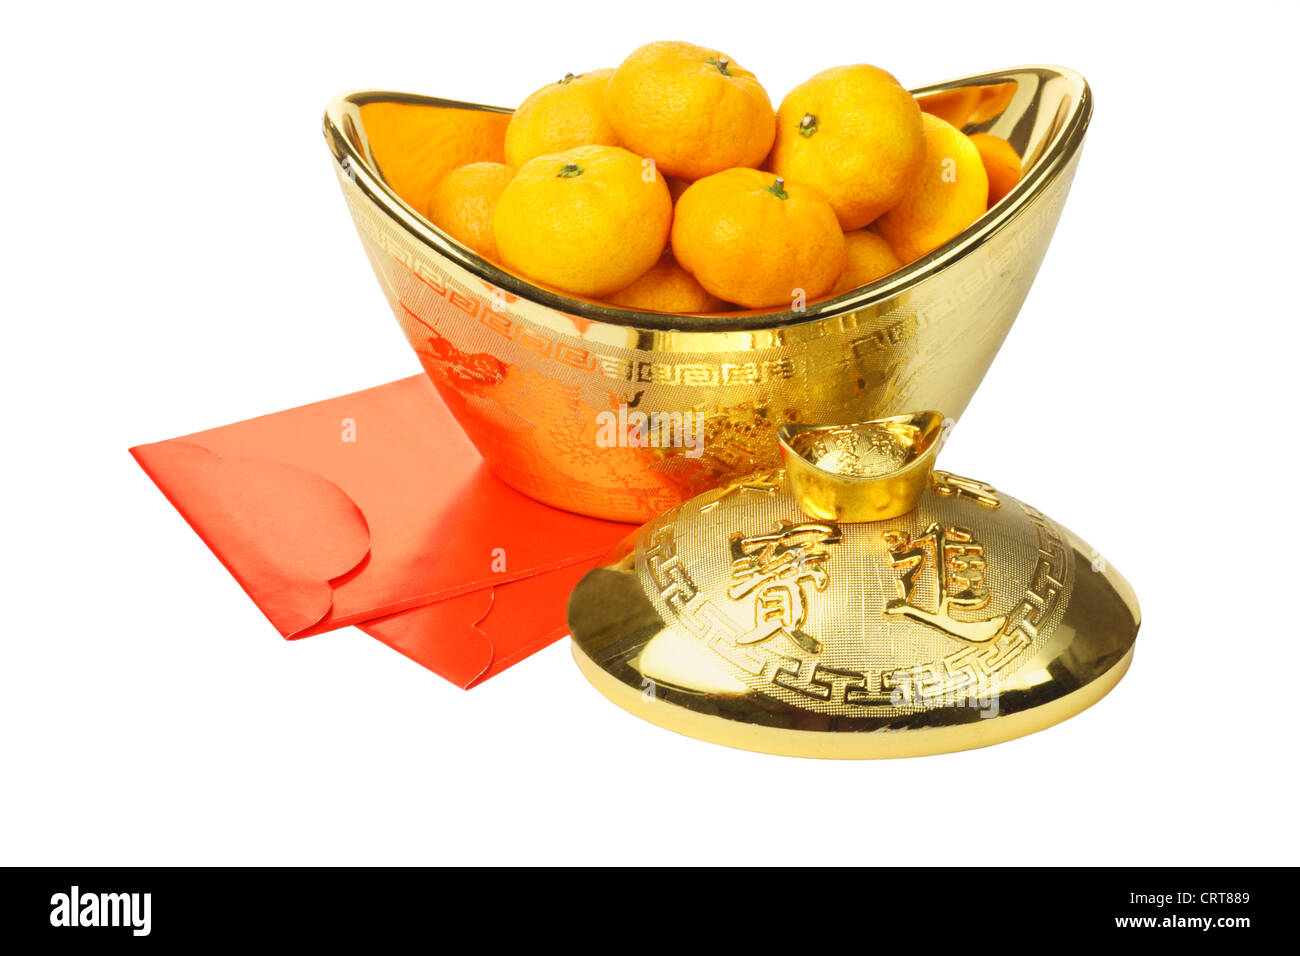 Chinese New Year Mandarin Oranges in Gold Ingot Container and Red Packets on White Background - Stock Image